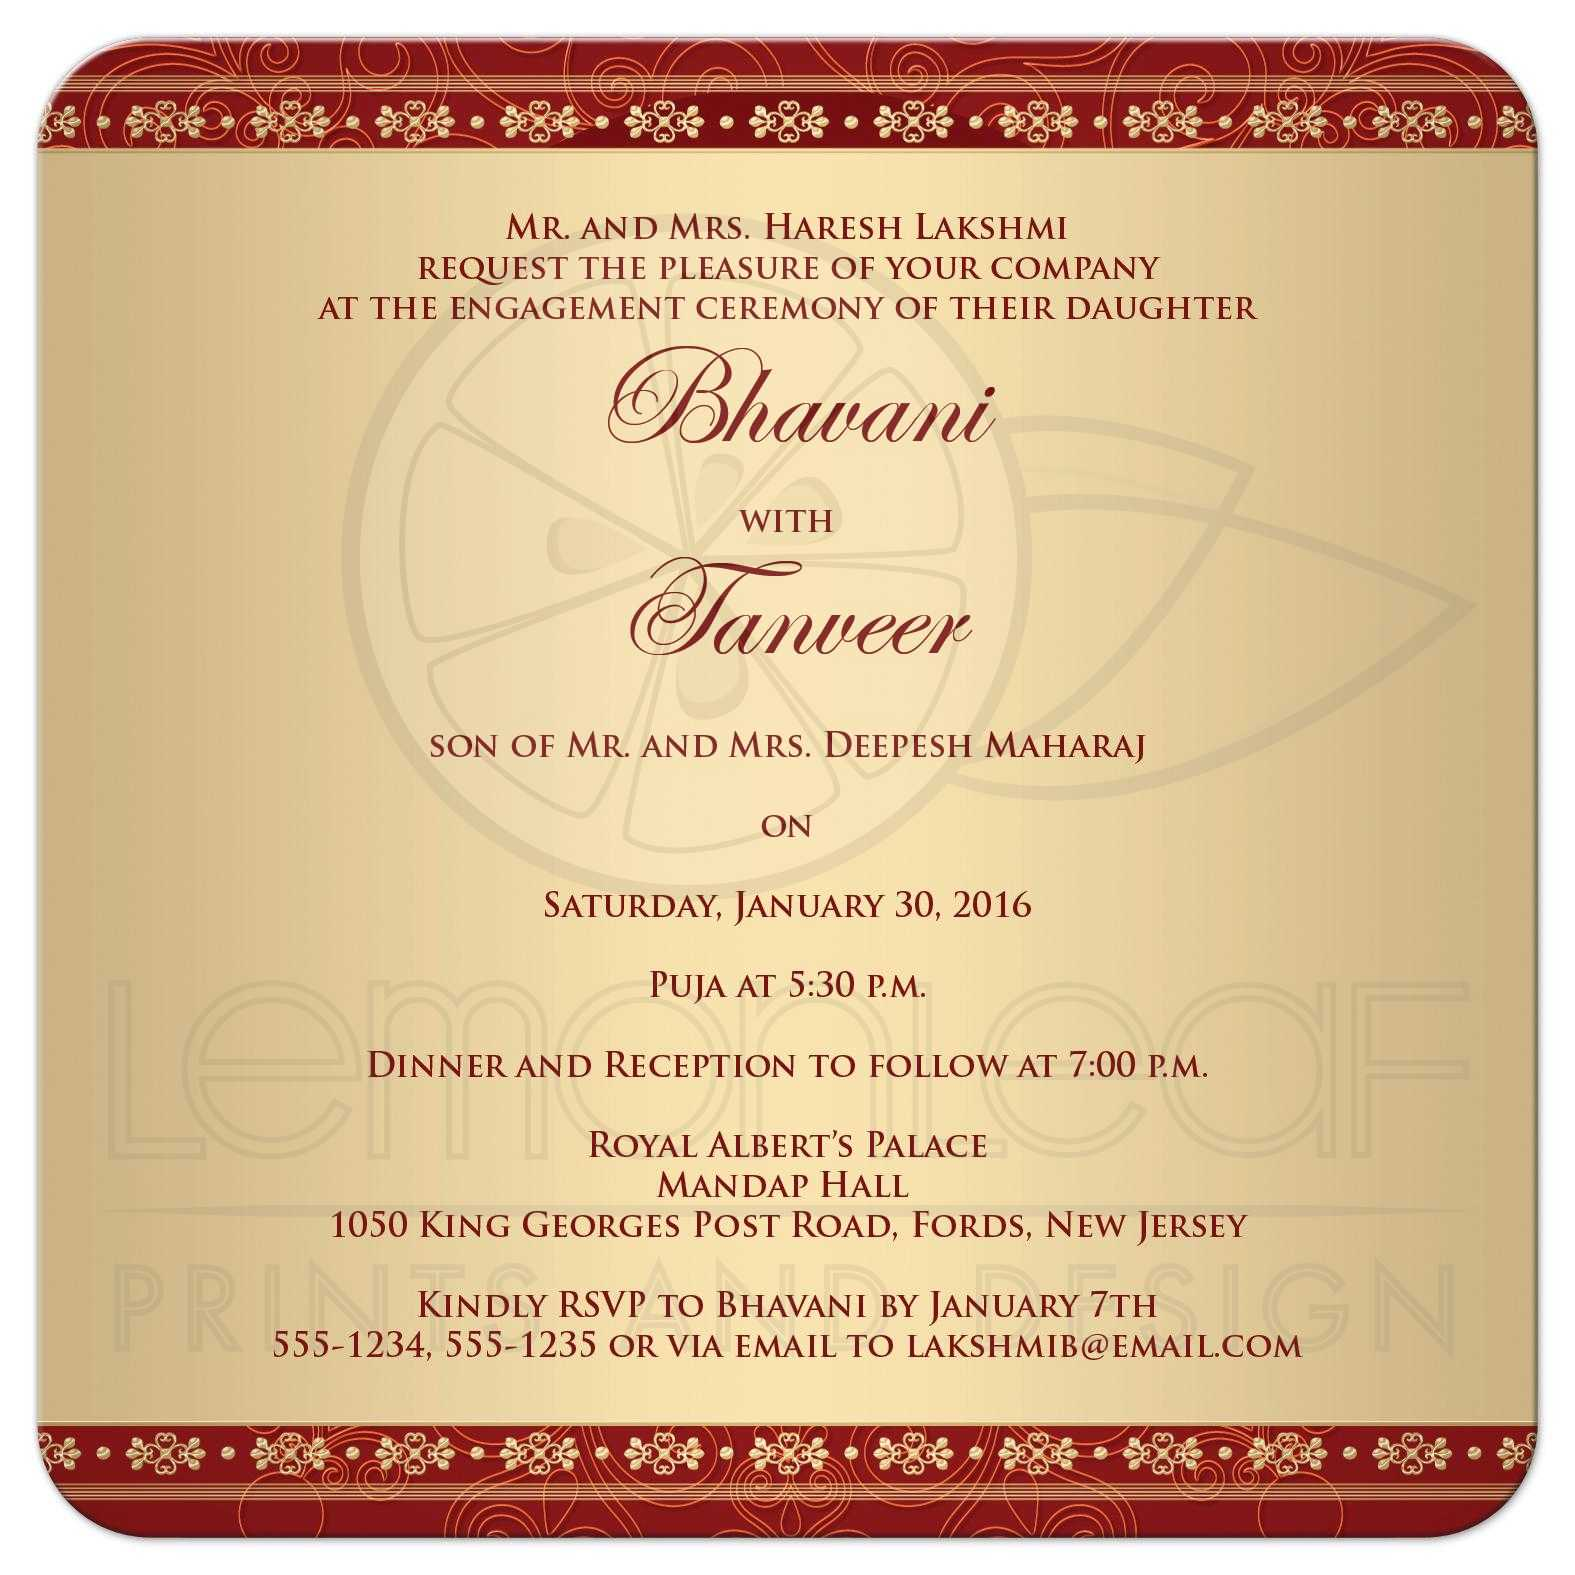 Hindu Engagement Invitation Cards As Awesome Invitations Design  Engagement Invitation Format